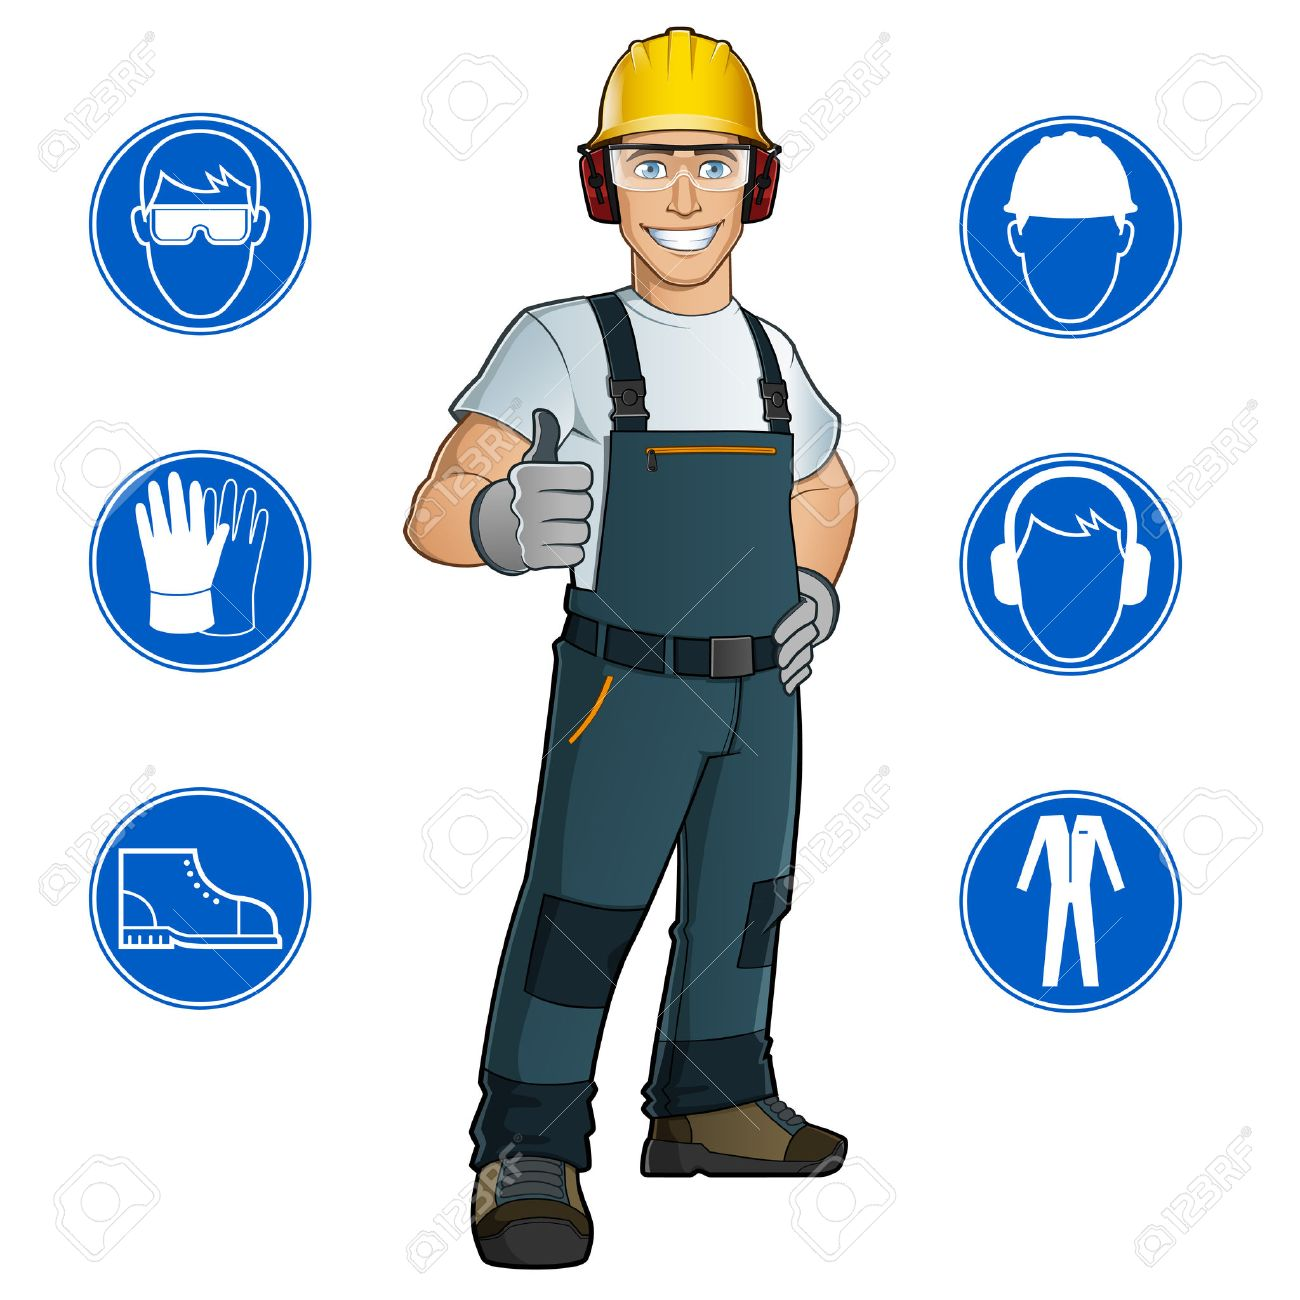 Man dressed in work clothes, and safety at work signs - 44059754